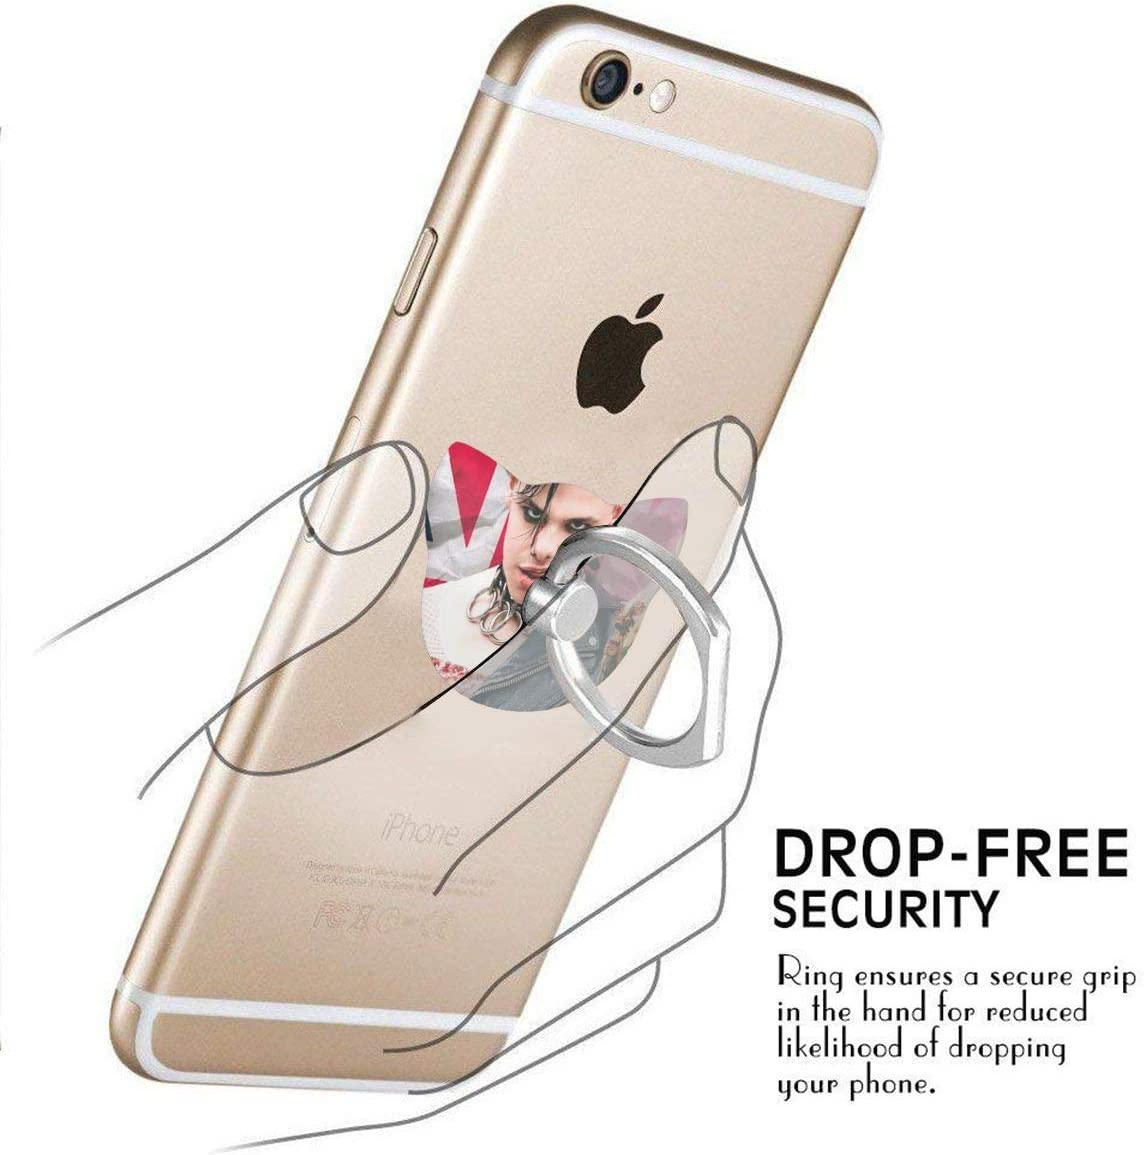 MANTSHIRT YUNGBLUD Cover Finger Phone Ring Holder Stand 360/° Rotation Durable Thin Universal Ring Buckle Grip Kickstand for iPhone Samsung LG Google Moto Smartphones Tablets